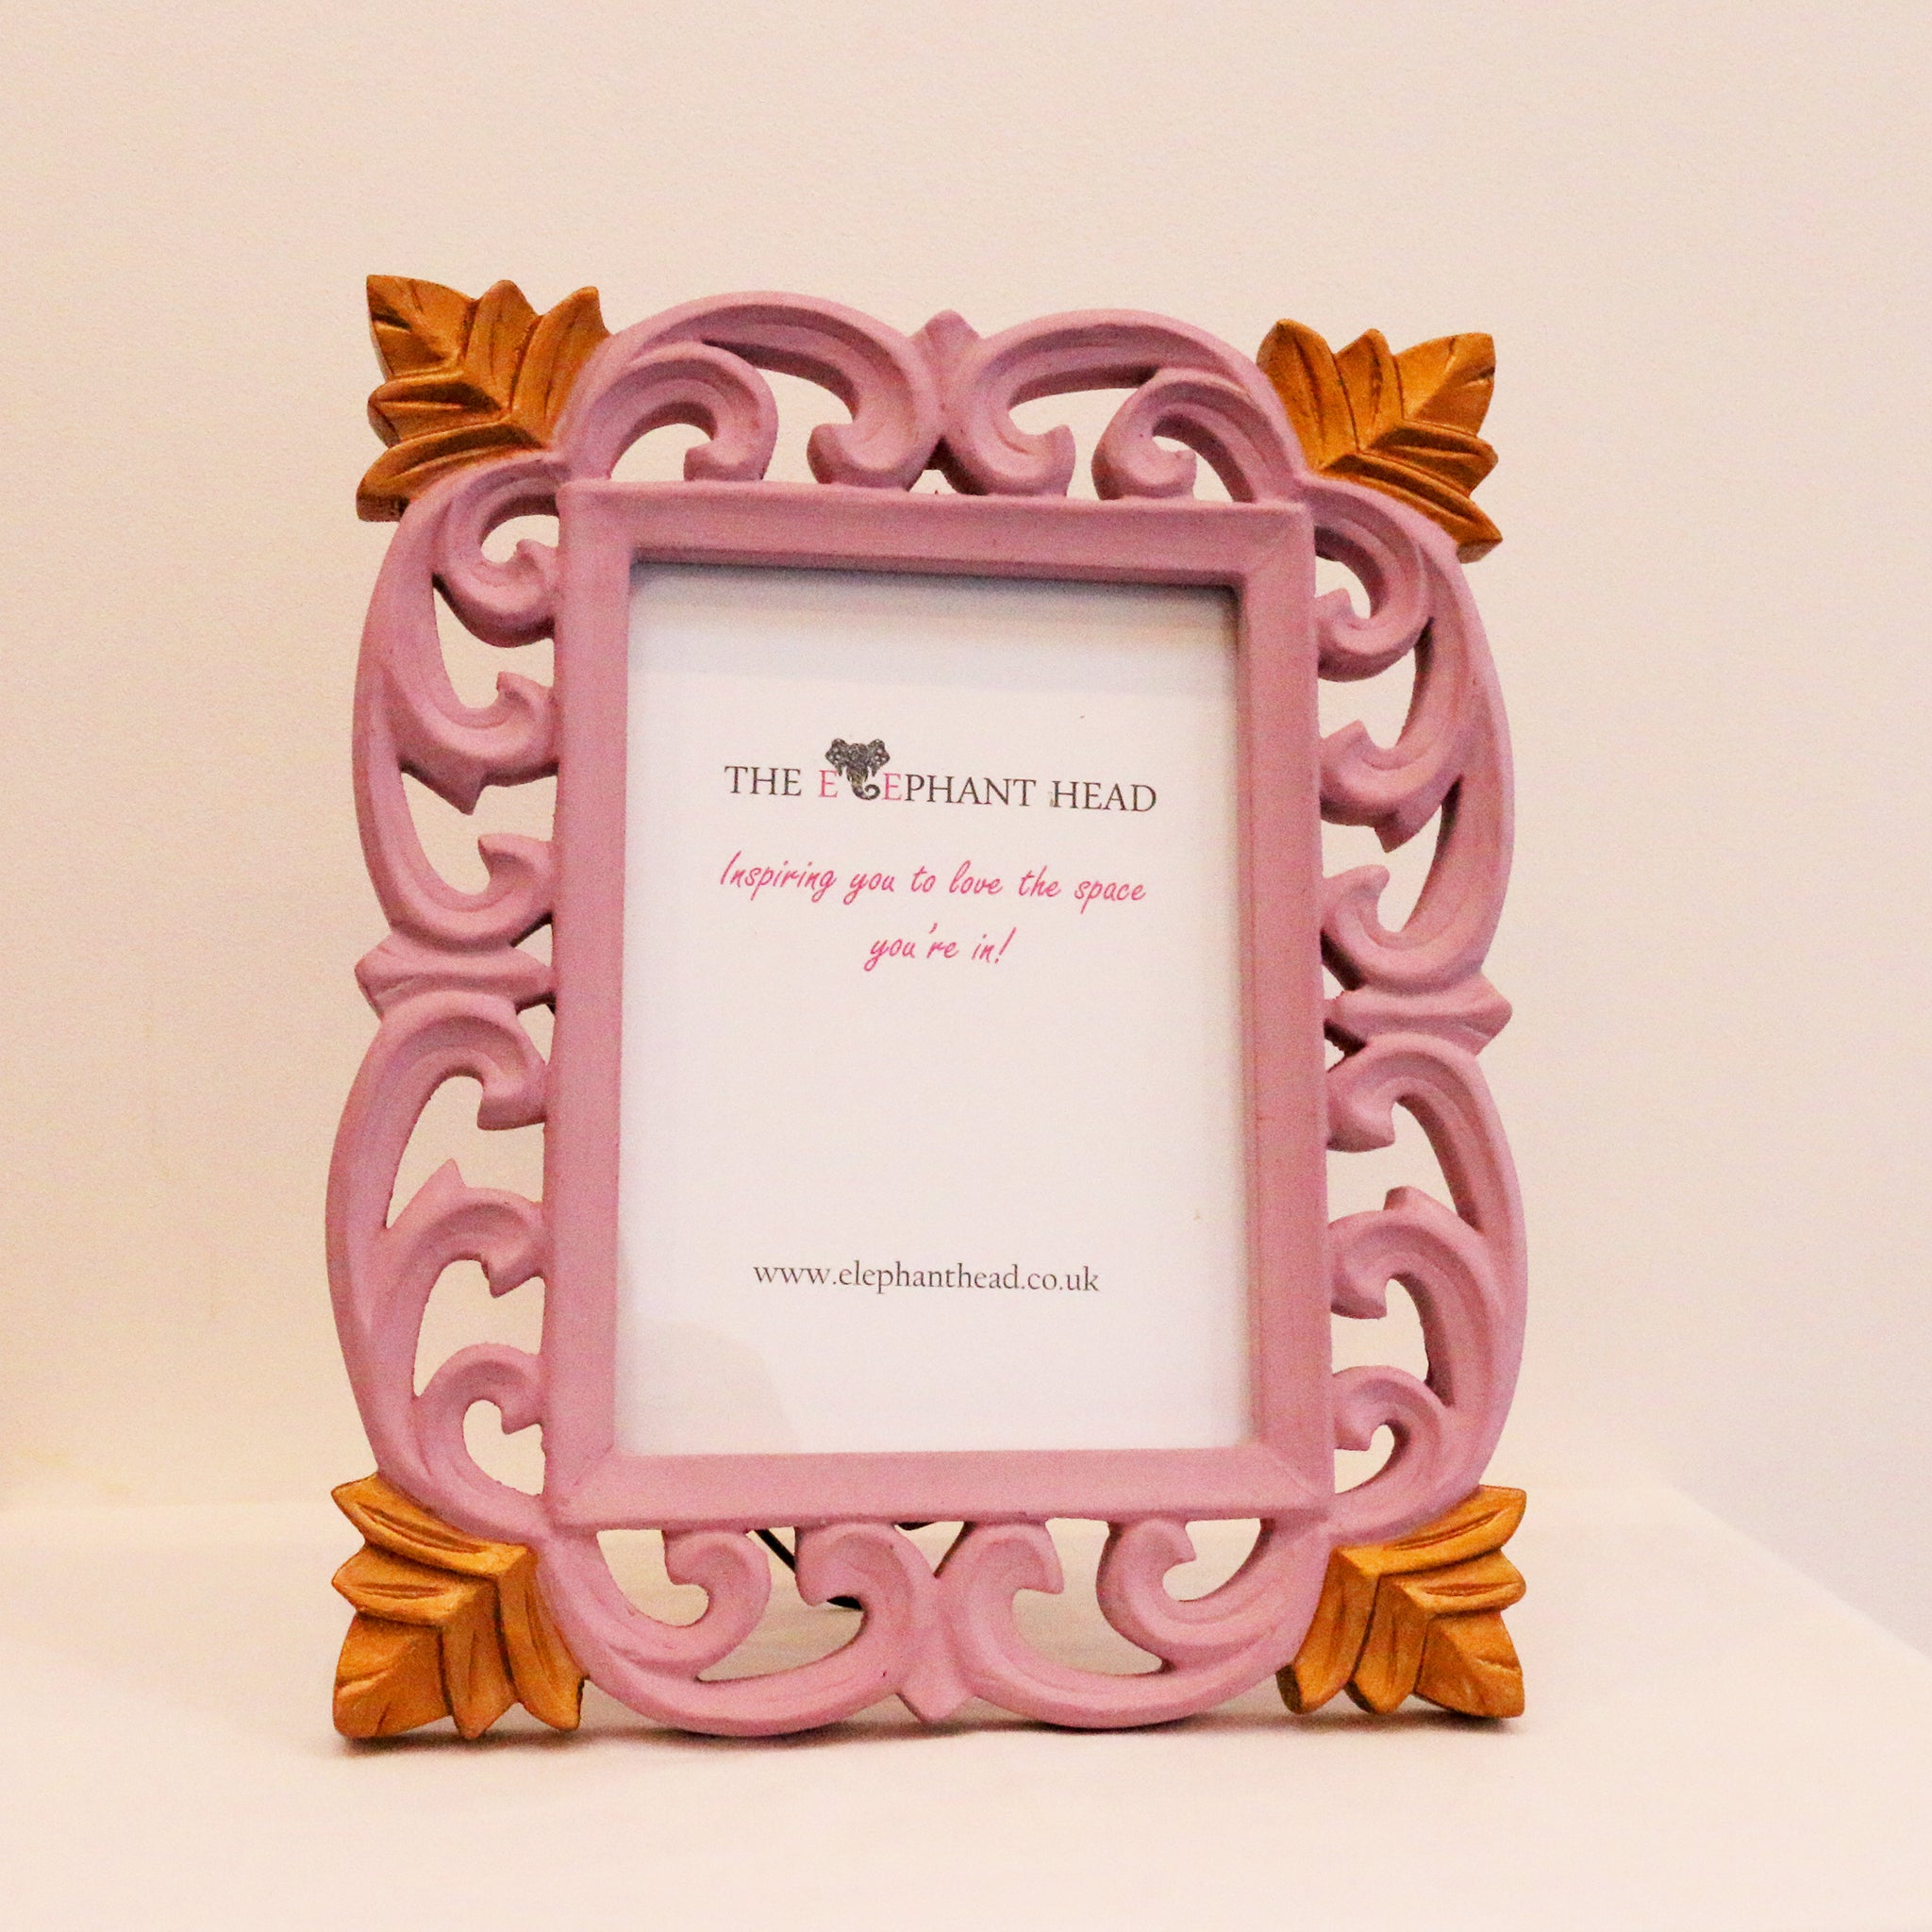 Pink and vintage gold picture frame front view